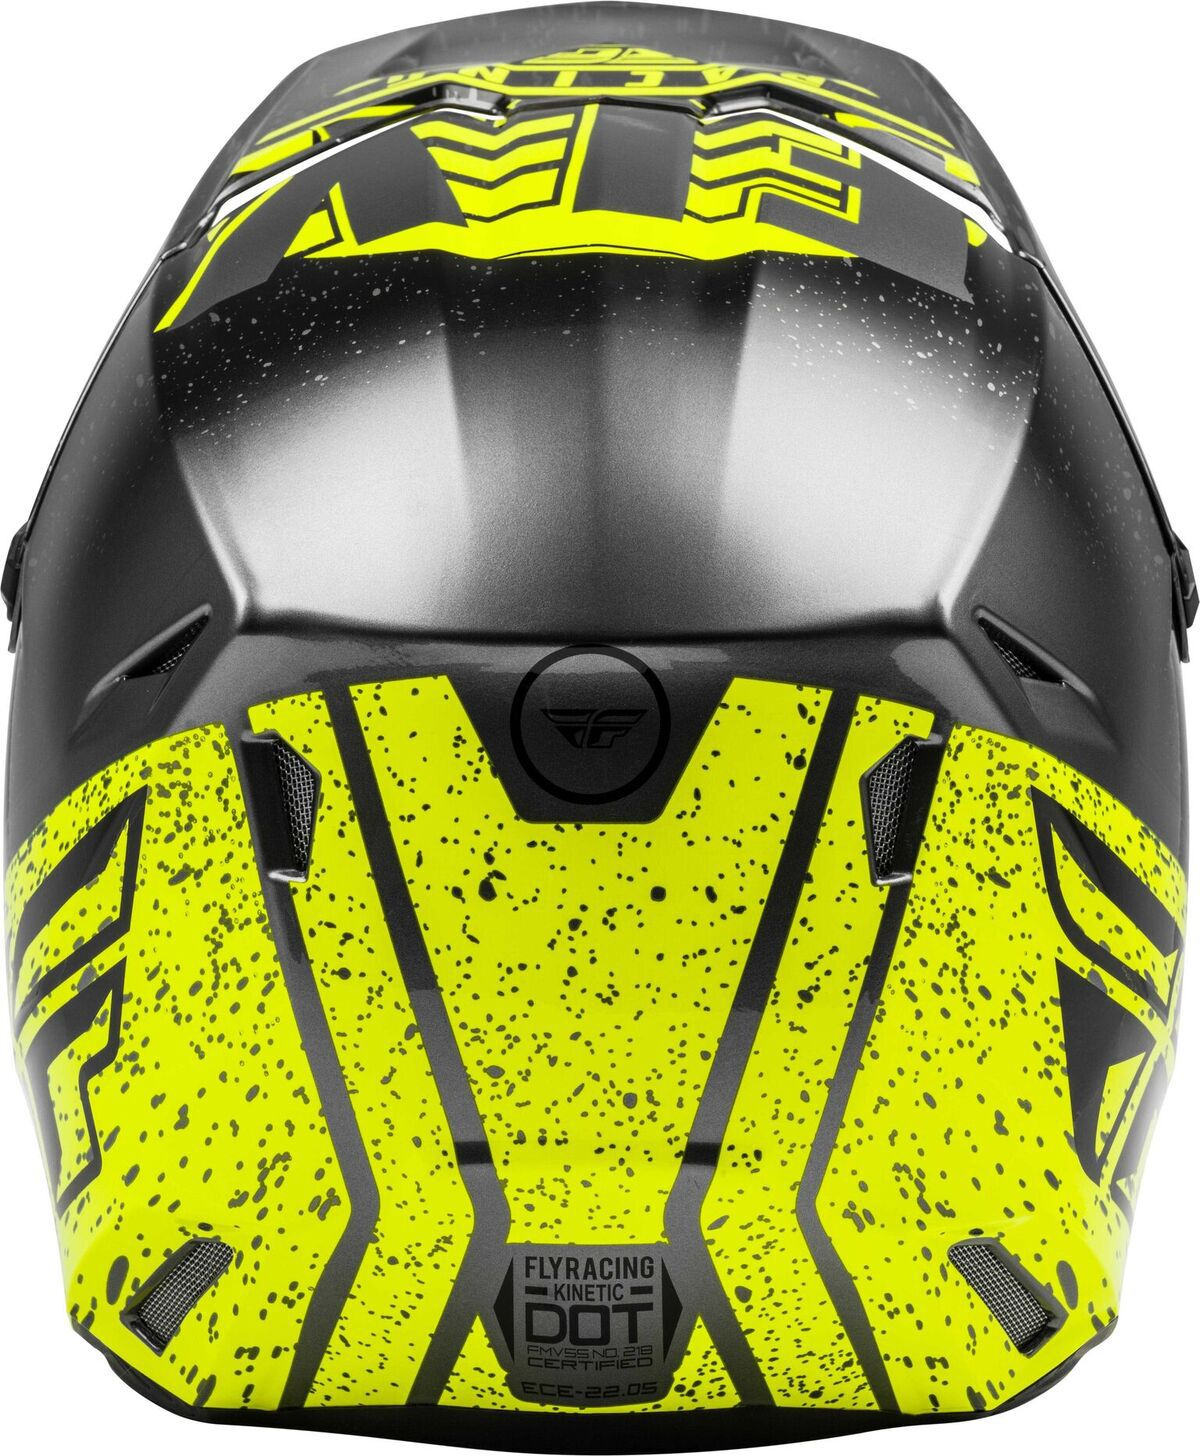 Capacete FLY Kinetic K120 - Fluor